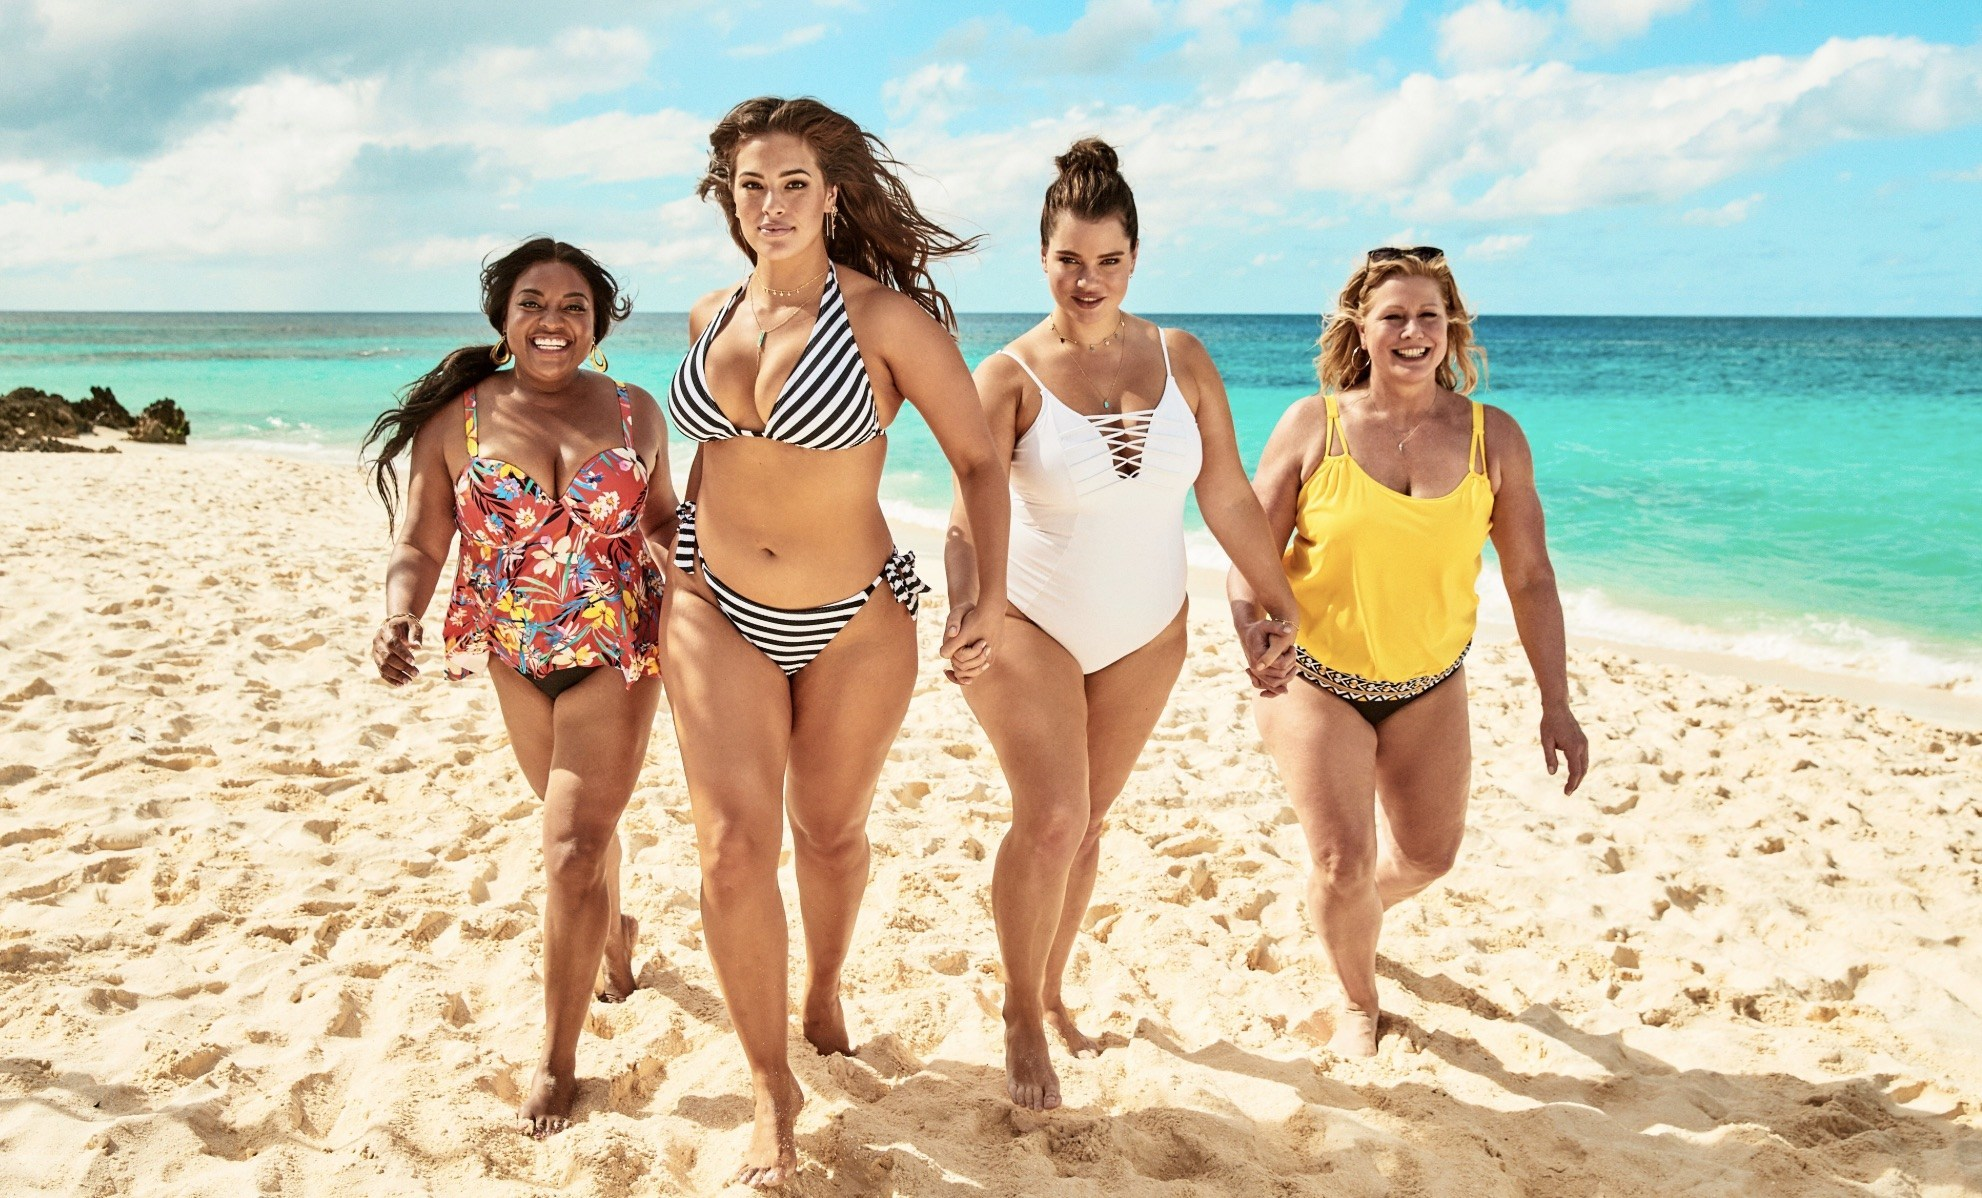 b1a3eb6191 Counts: Swimsuits For All x KingSize Partner to Launch Summer Campaign  Starring Supermodel and Entrepreneur Ashley Graham and Sherri Shepherd